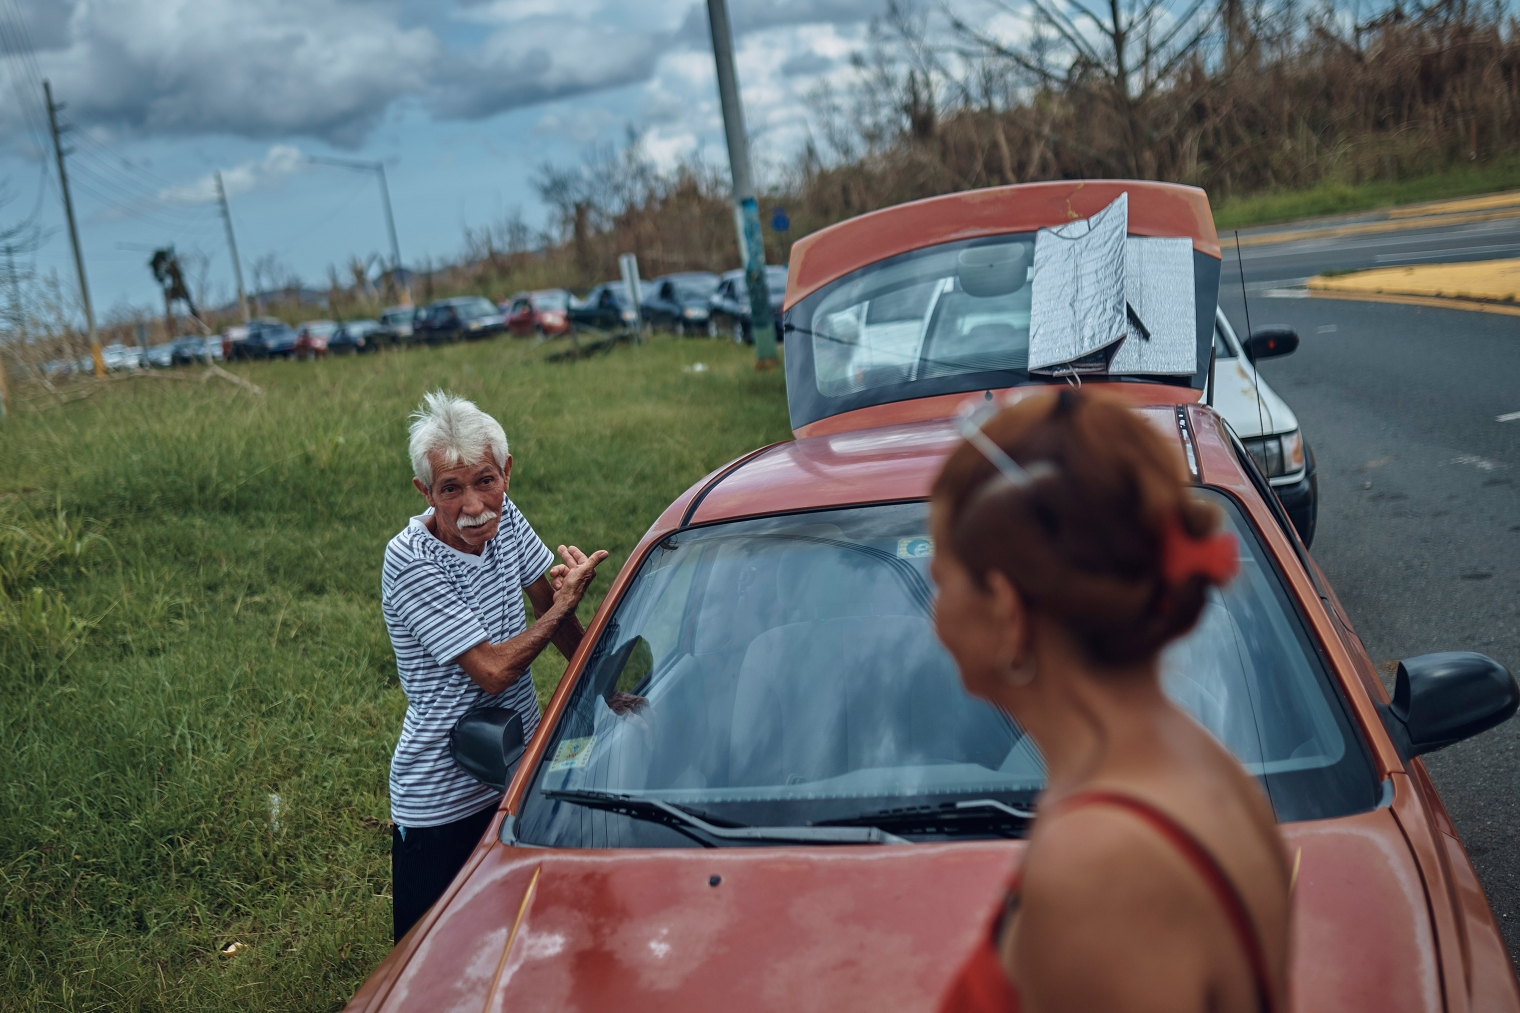 People wait in line to buy gasoline in Morovis, Puerto Rico, on Oct. 1, 2017.